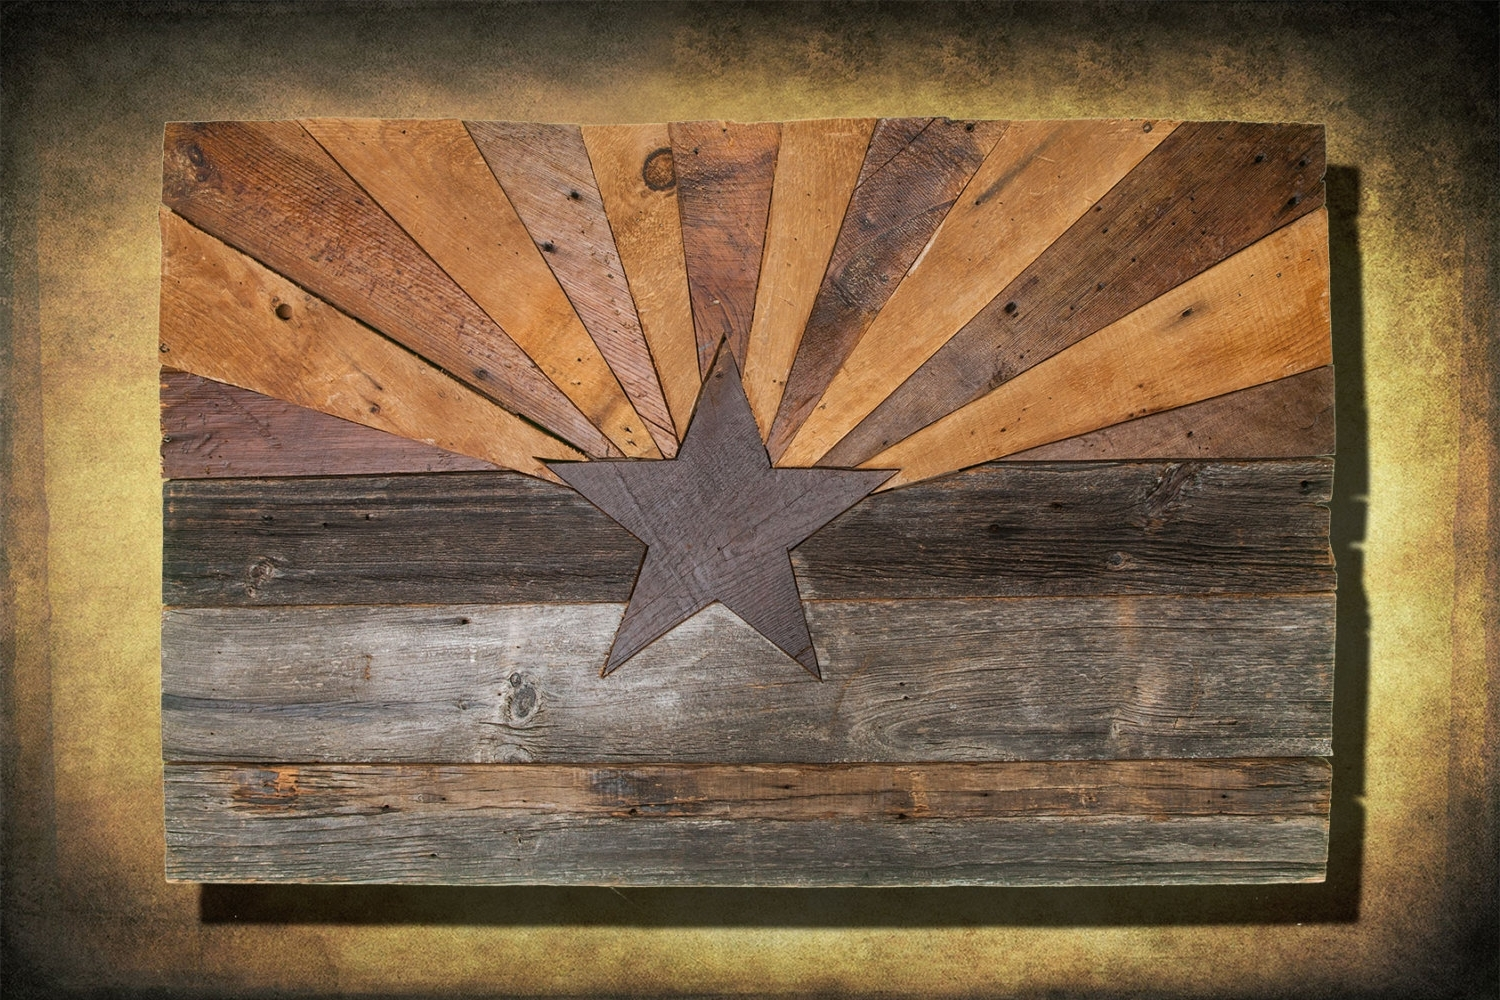 Newest Barn Wood Arizona Flag, Handmade, Distressed Natural Wood, Vintage Regarding Arizona Wall Art (View 15 of 20)